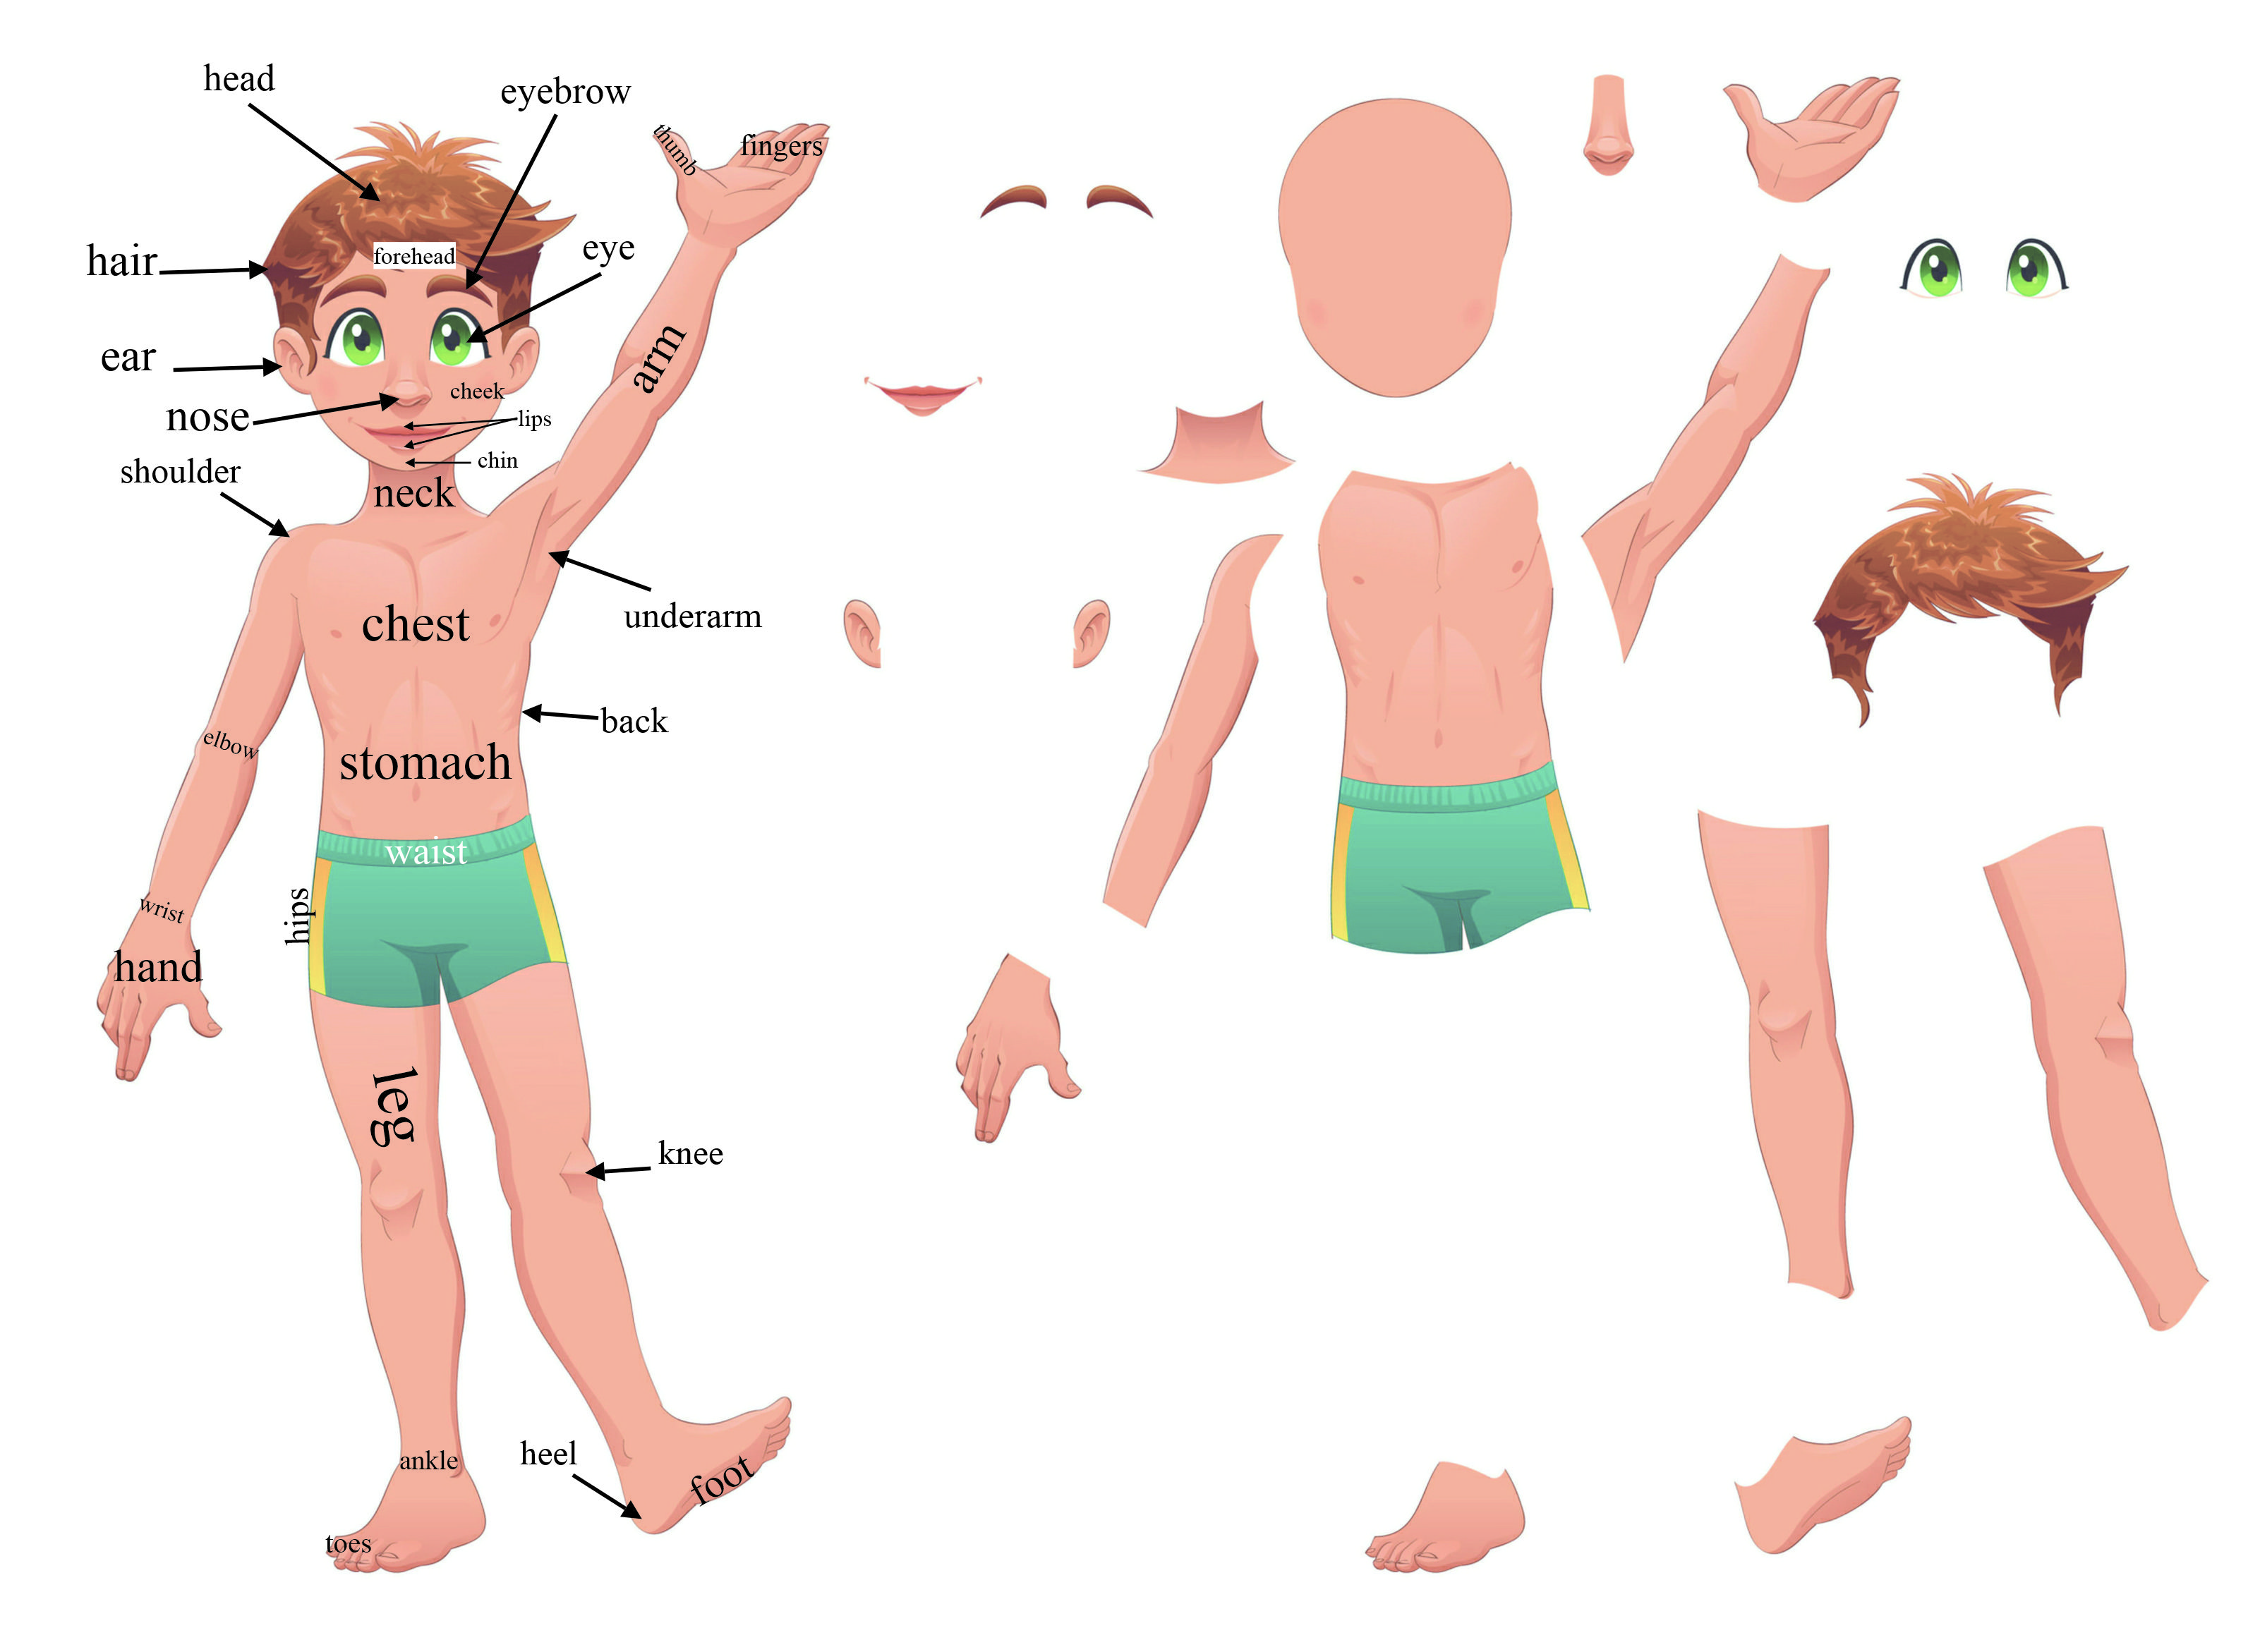 body parts - lessons - tes teach, Human Body